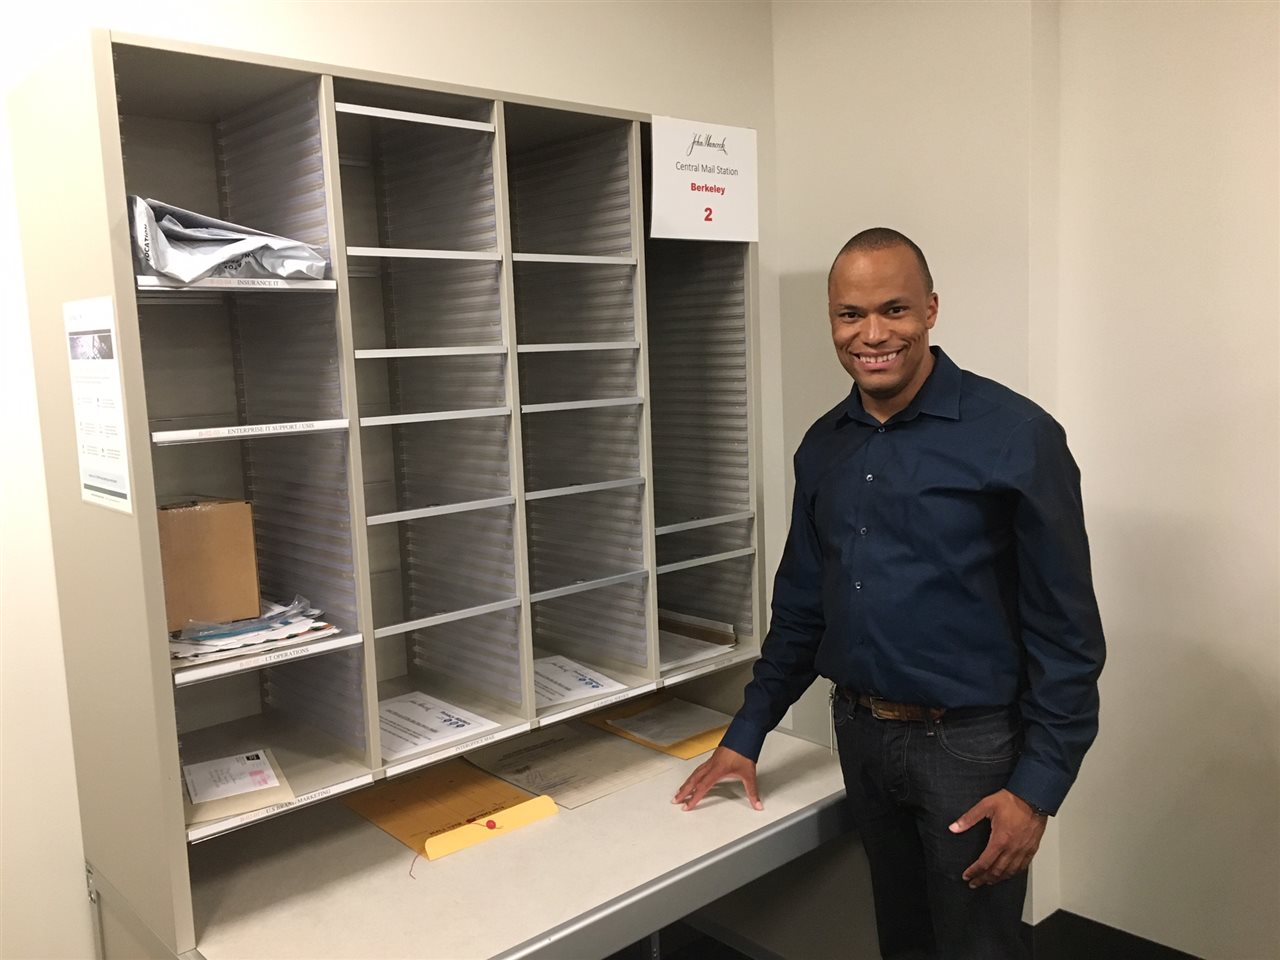 Dudley Williams III is successful in an inclusive workplace.